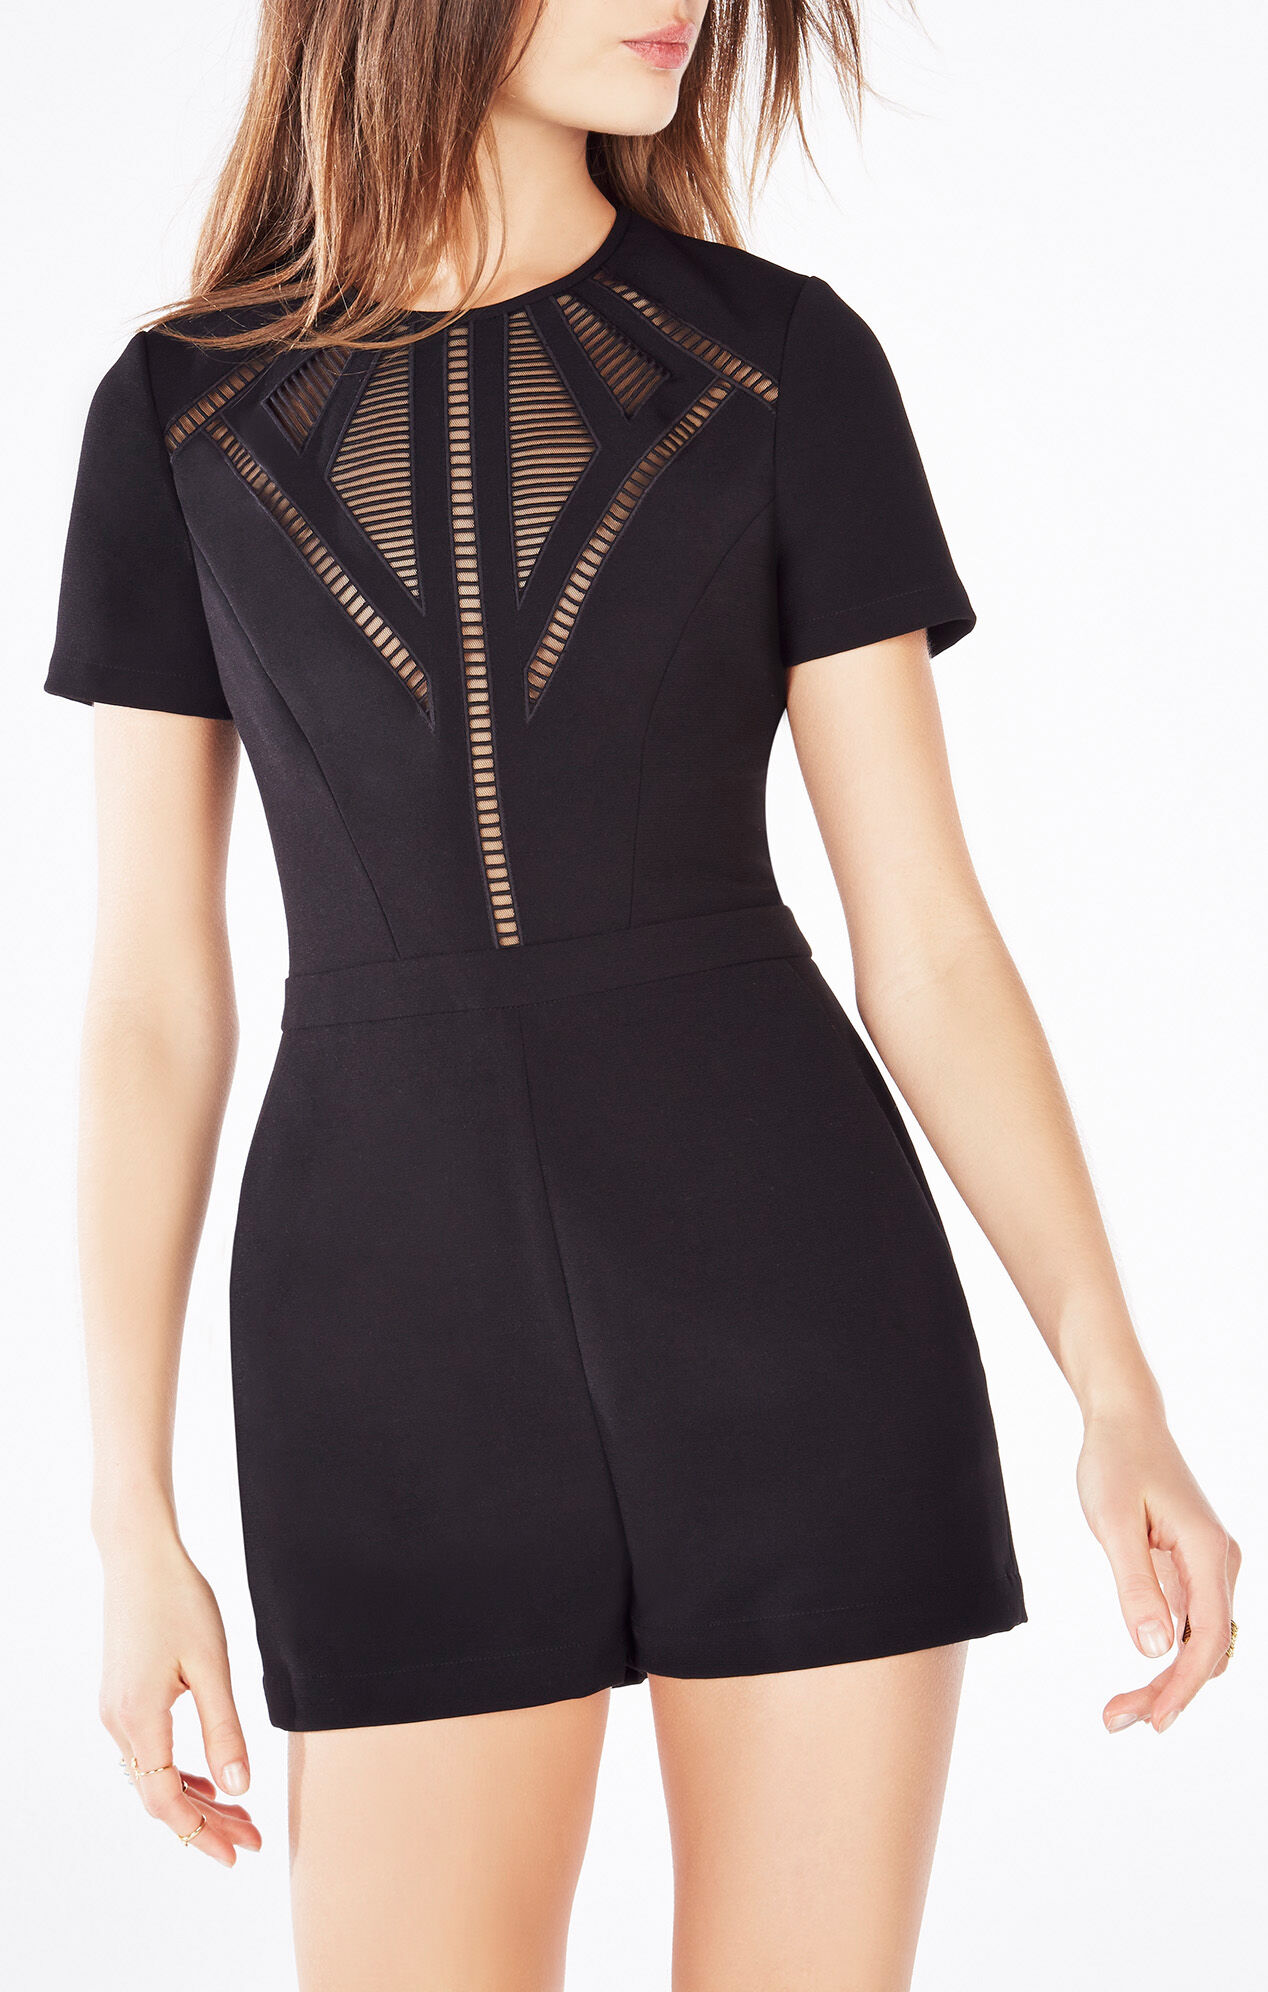 Maree ShortSleeve Embroidered Romper